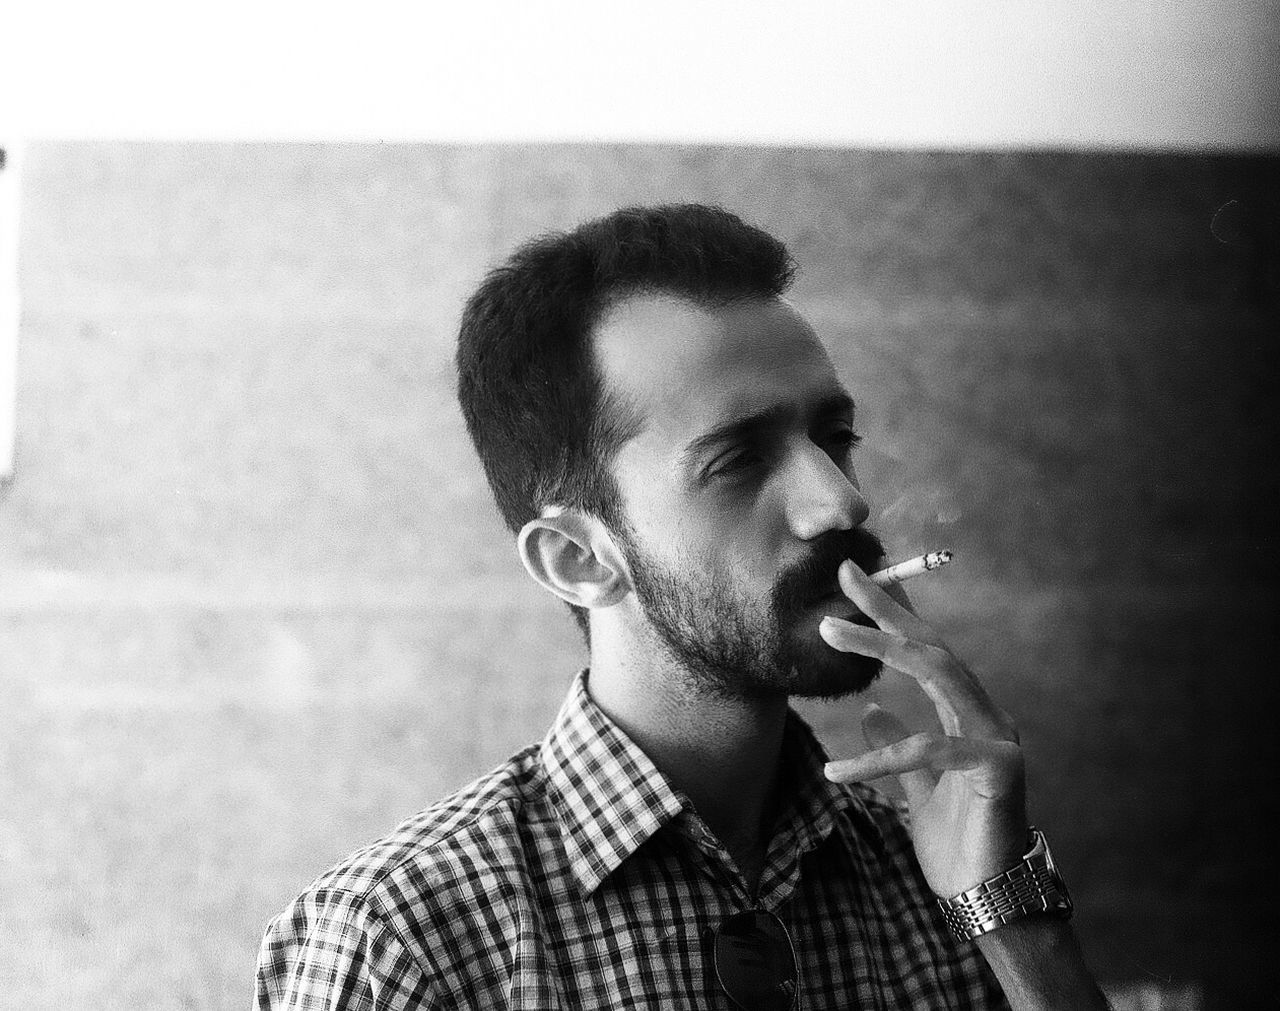 Analogue Photography Blackandwhite Portrait ProCamera - Shots Of The Year 2014 Portait Of A Friend Tehran The Human Condition B&W Portrait The Portraitist - 2016 EyeEm Awards Shades Of Grey